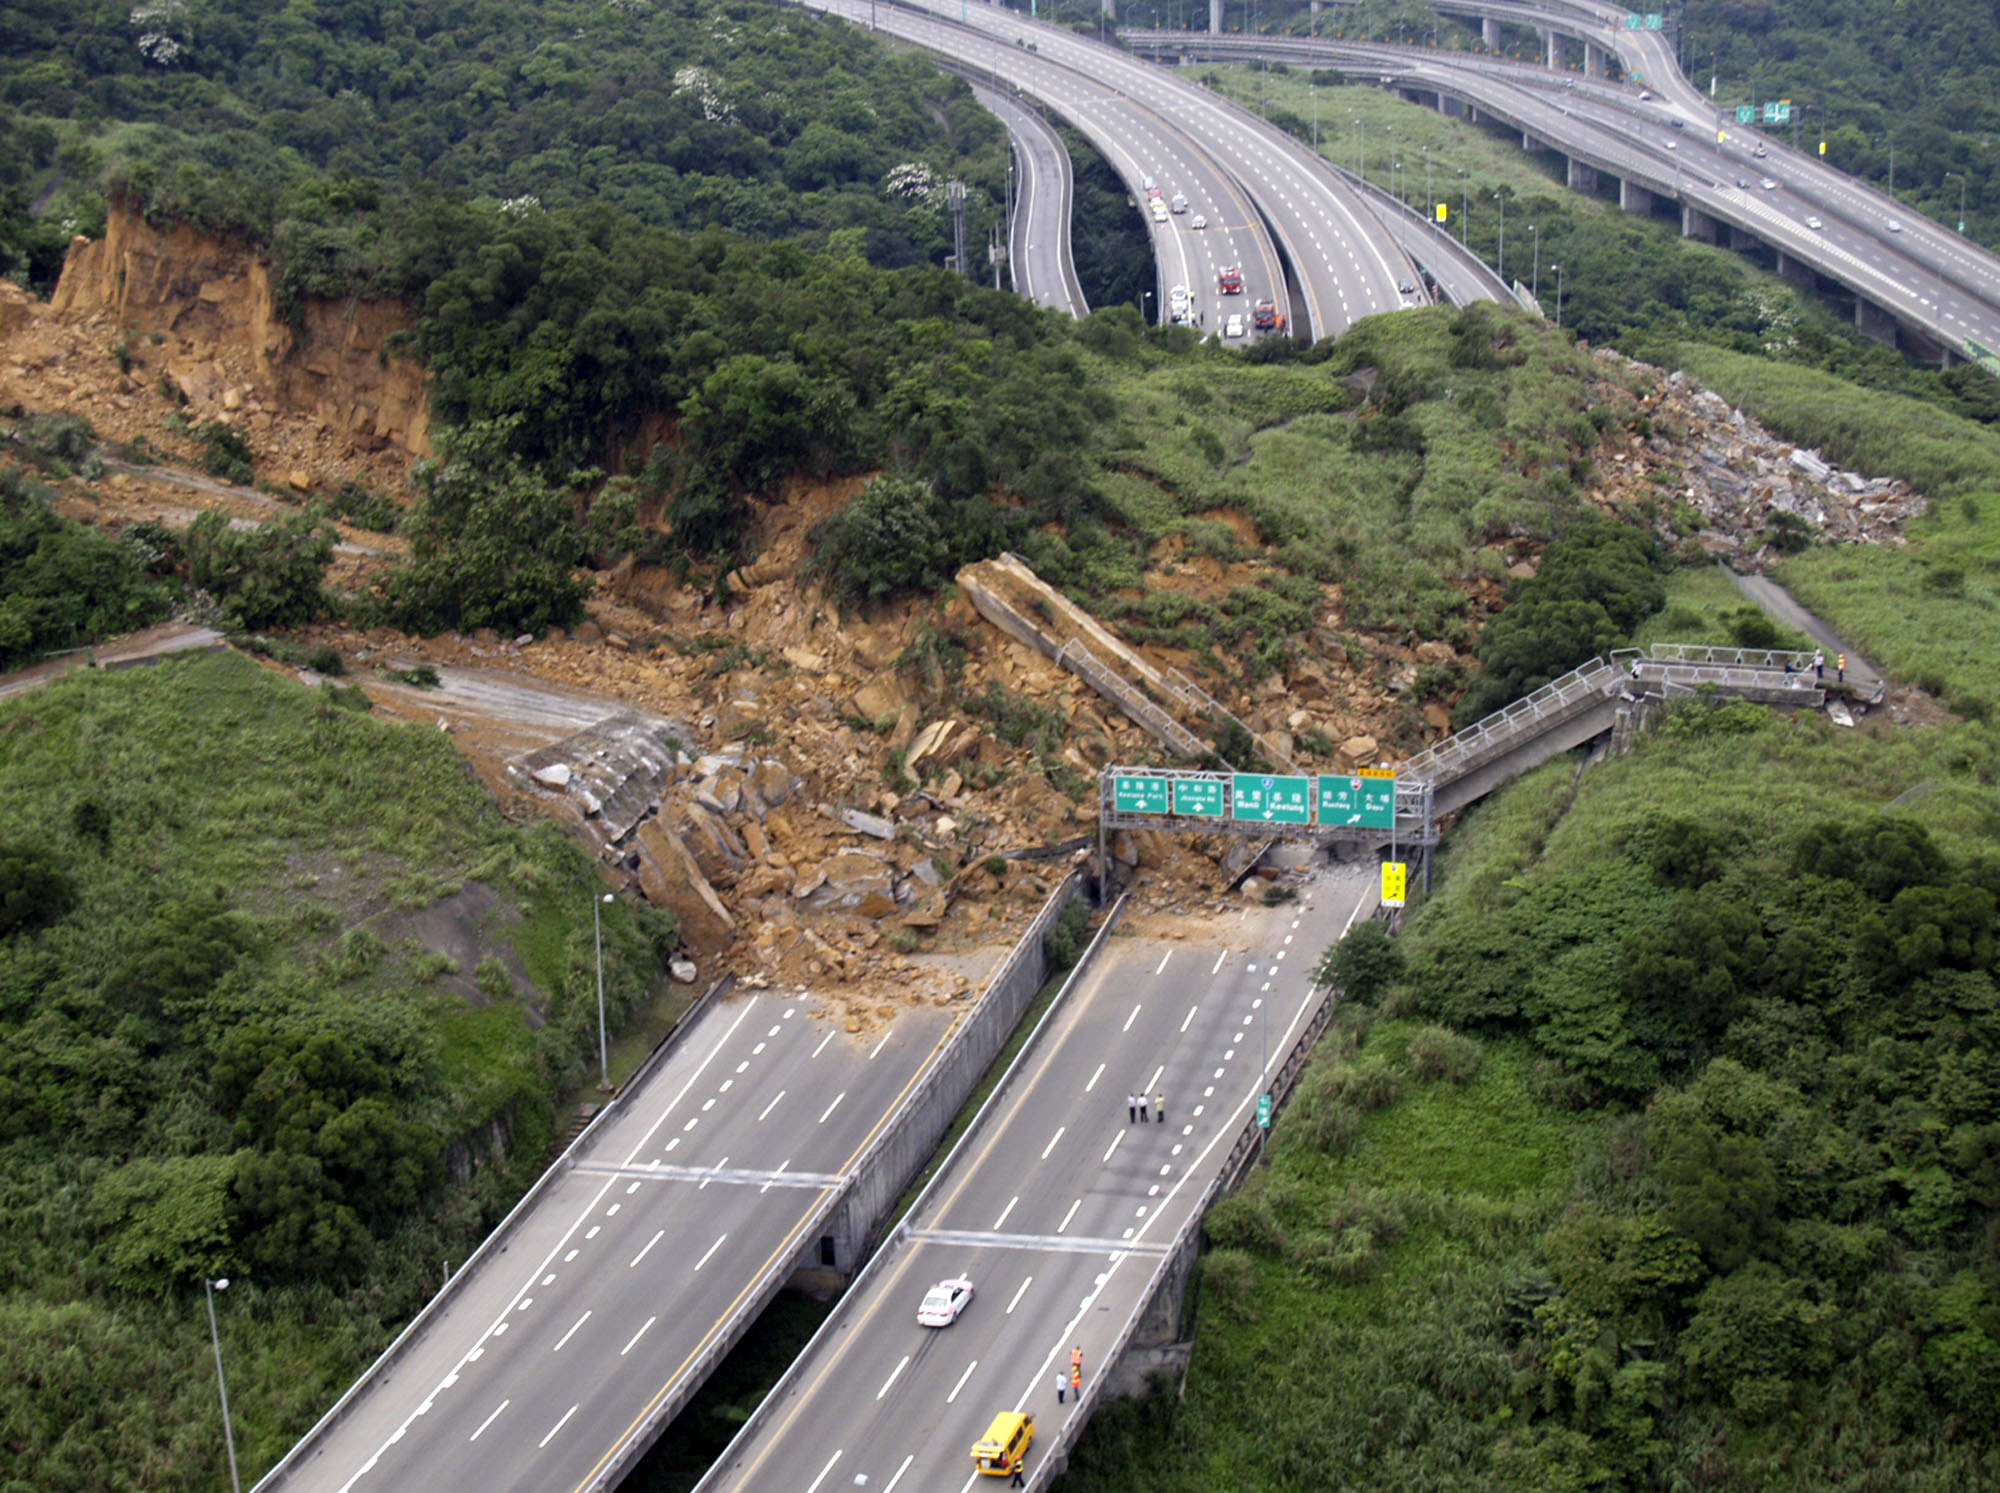 A landslide destroys portions of a major highway outside of the northeastern port city of Keelung, northern Taiwan is shown in this aerial image made ...